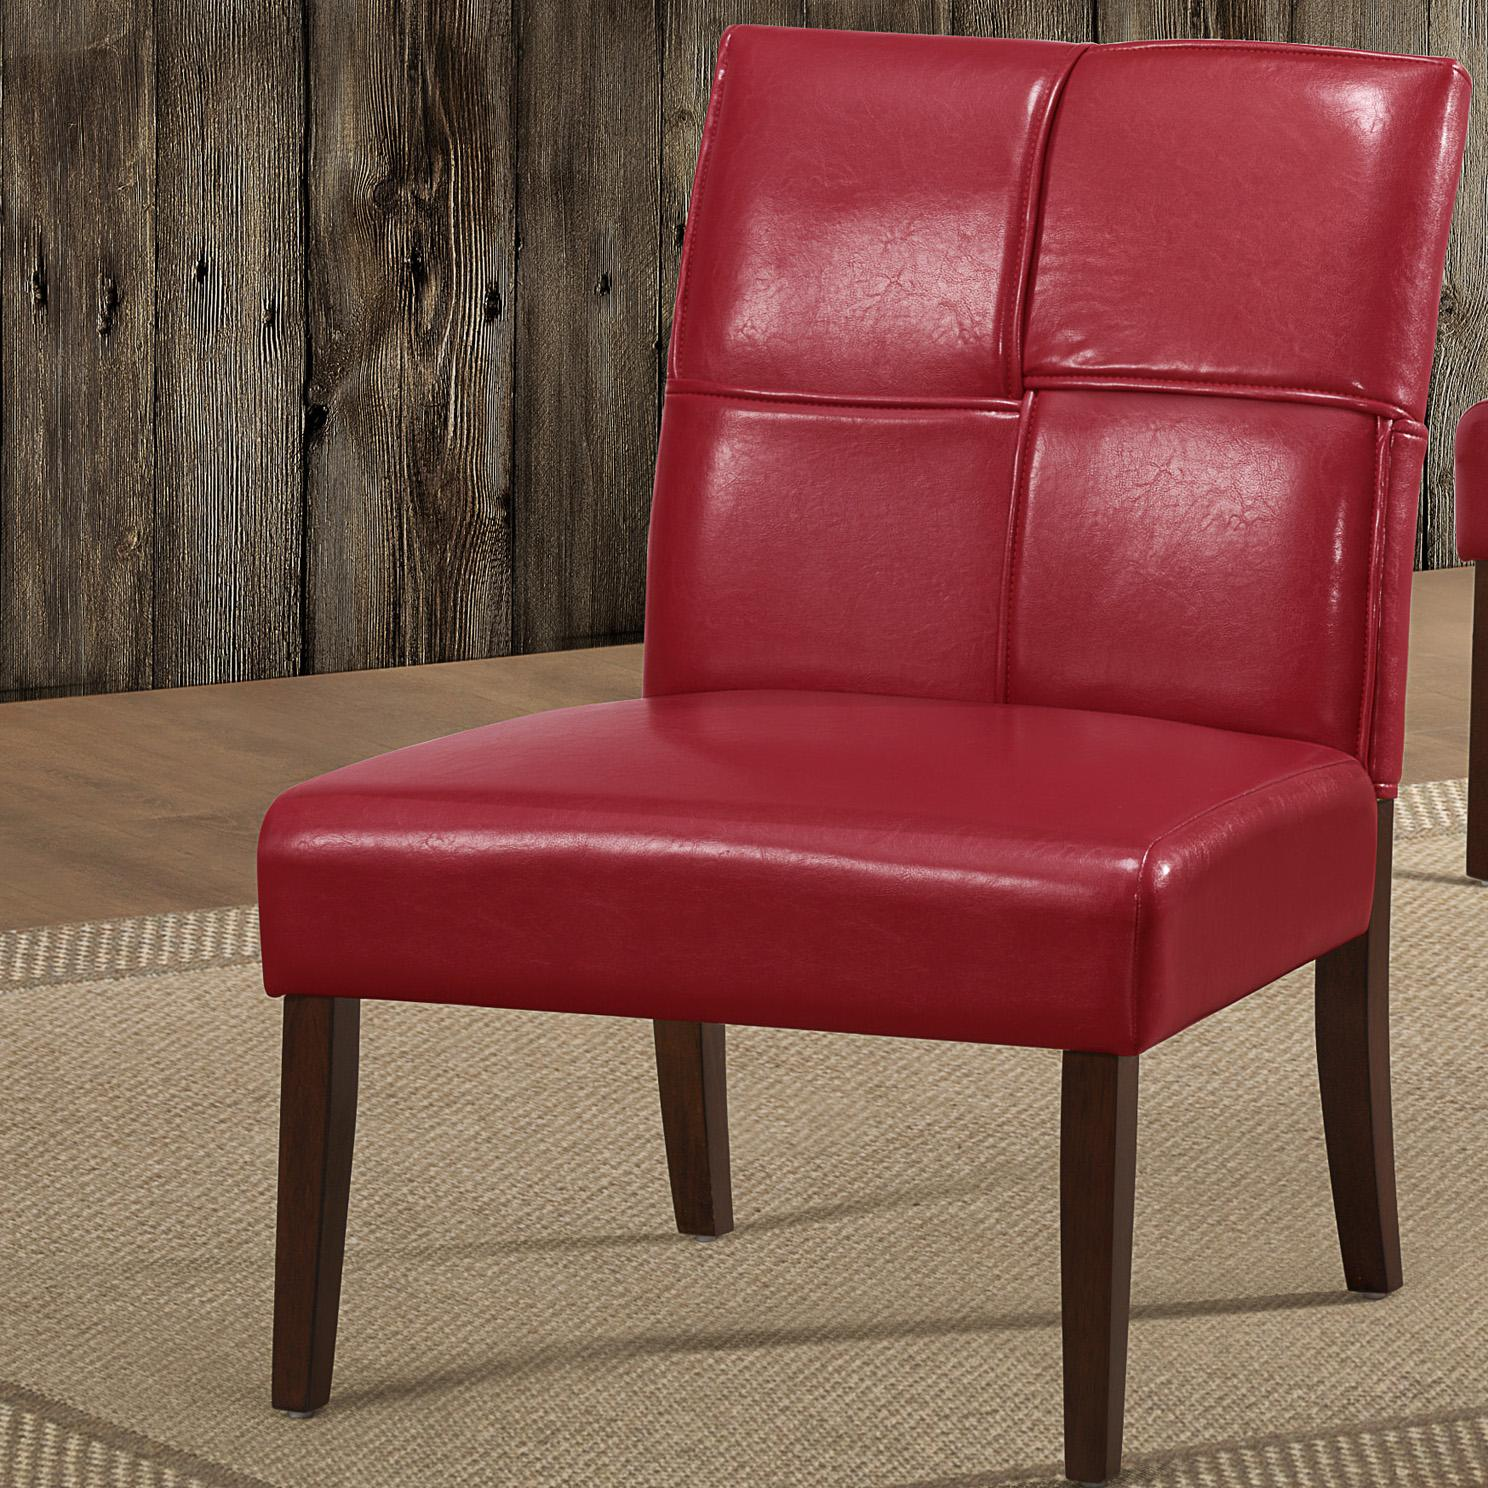 Red Chisese Accent Chair: Amazon.com: Homelegance 1215RDS Armless Accent Chair, Red